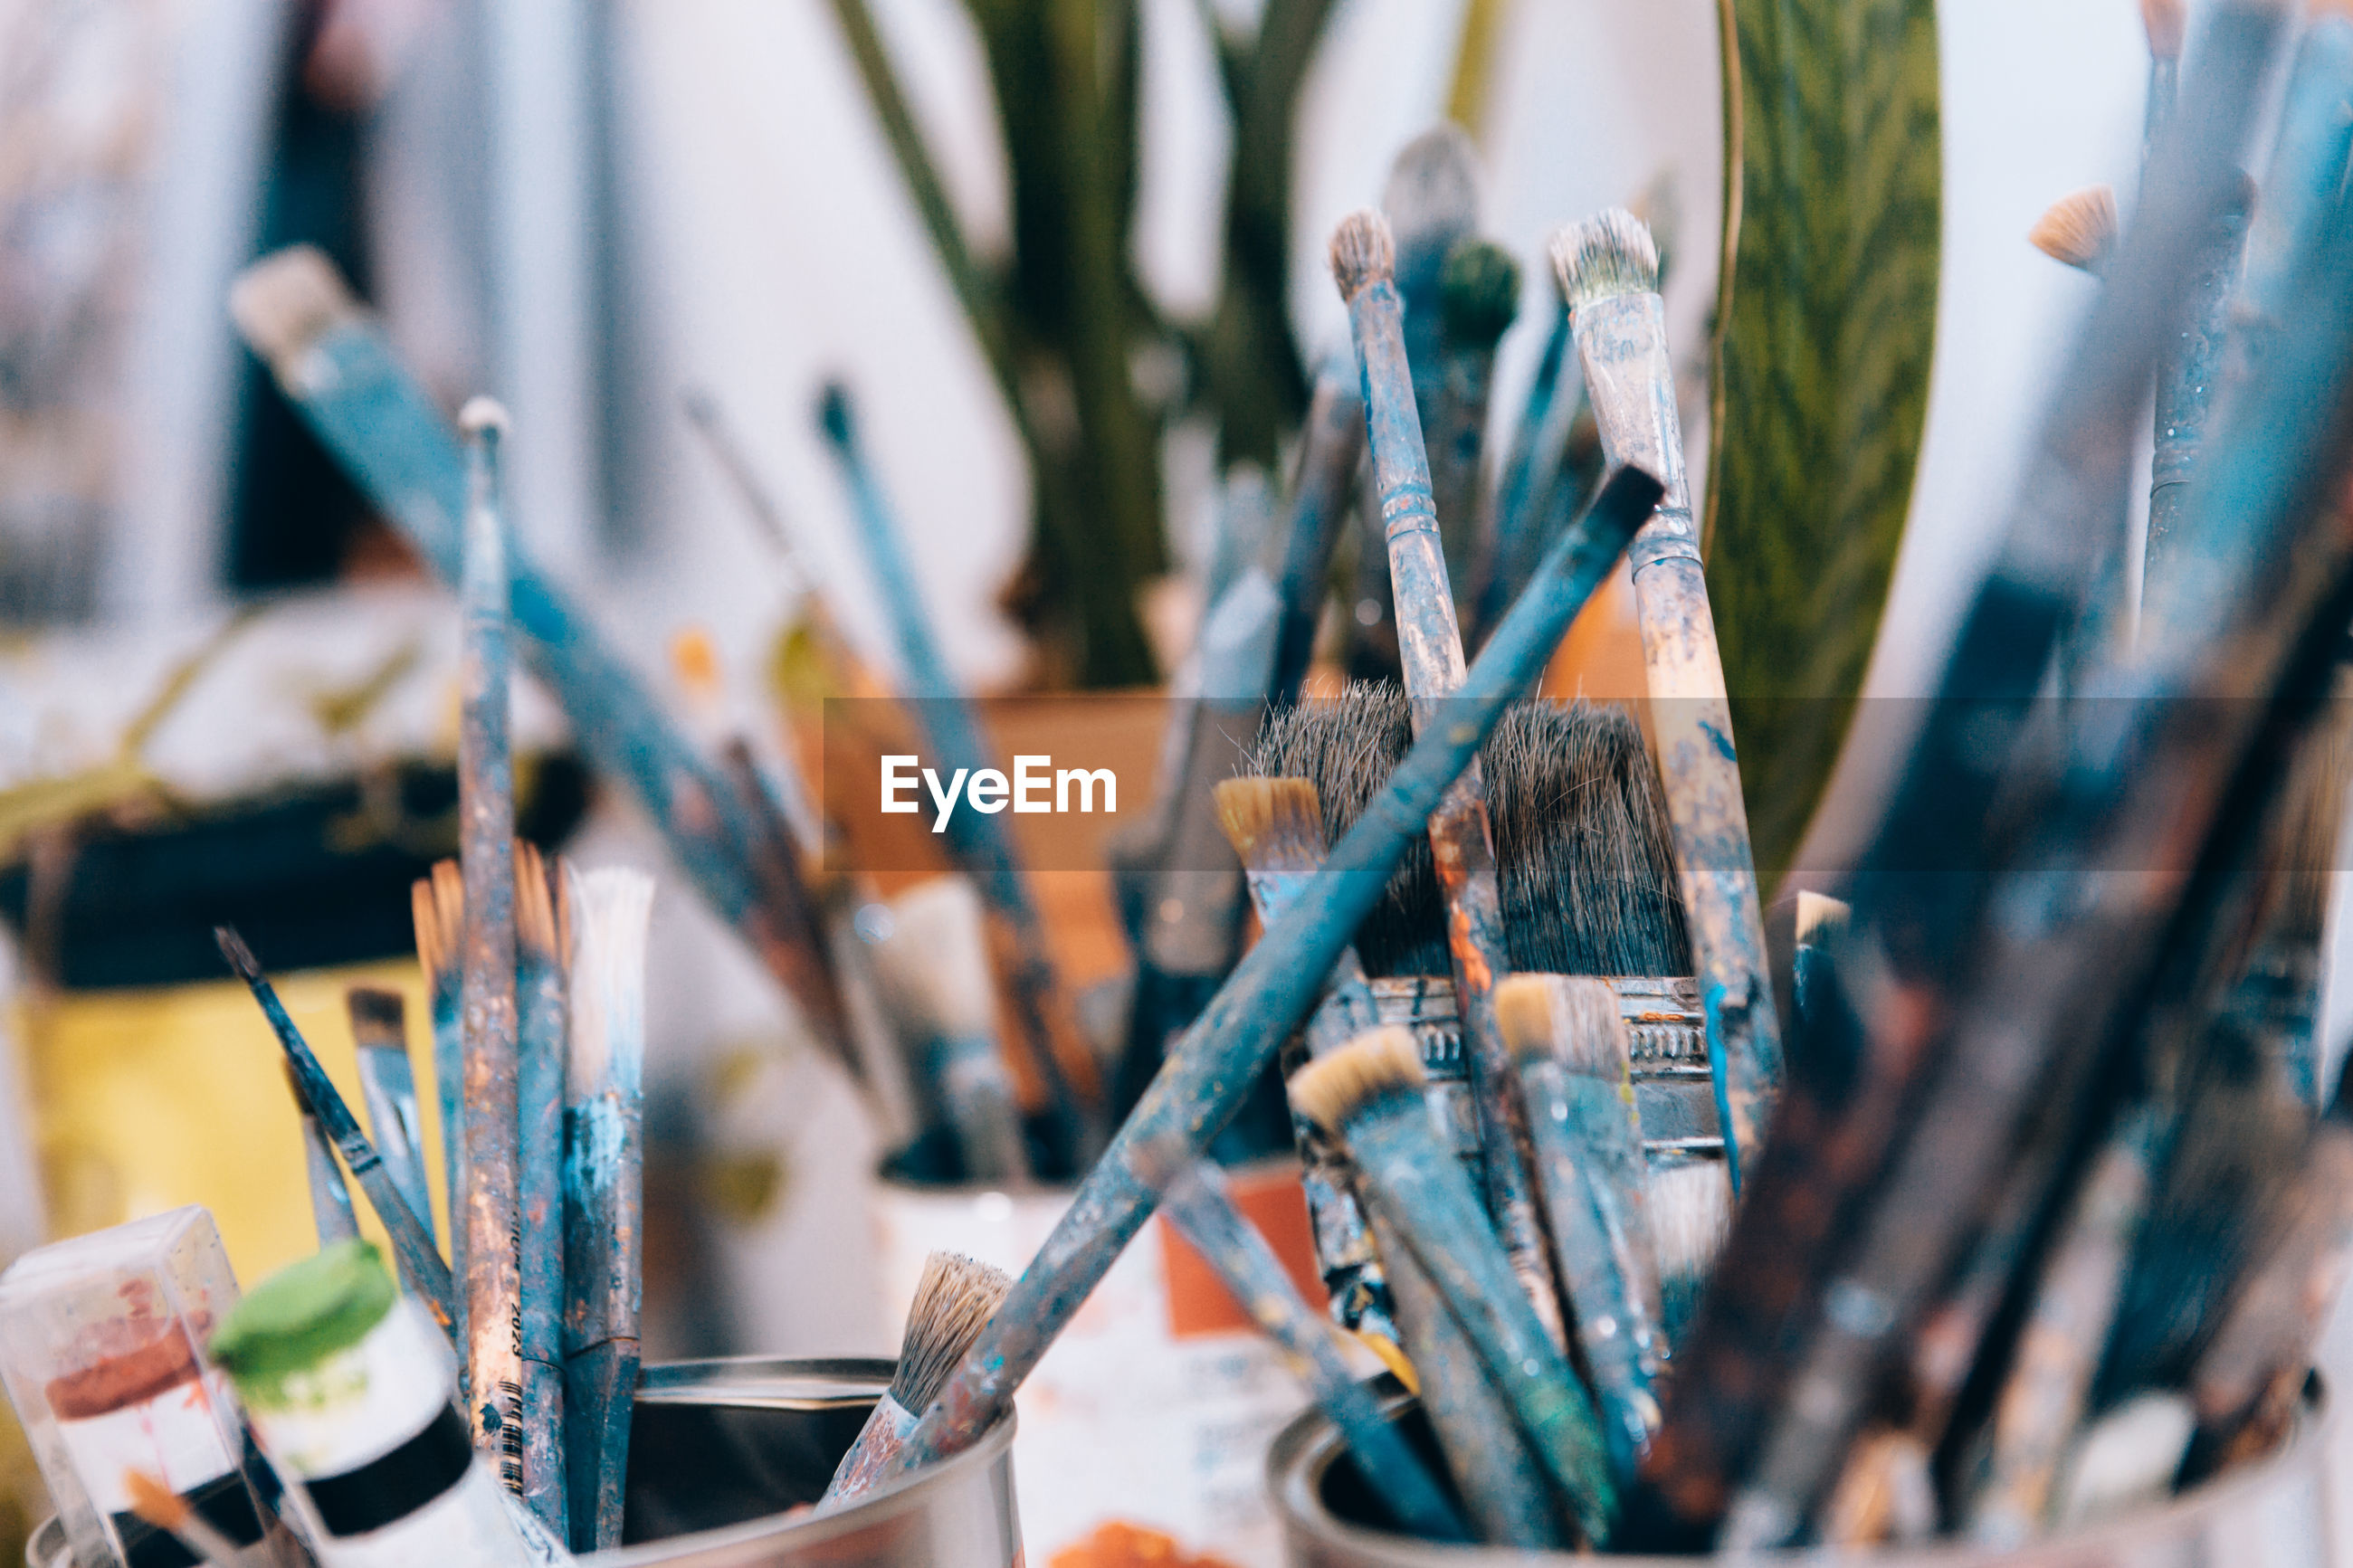 Close-up of used painter's brushes